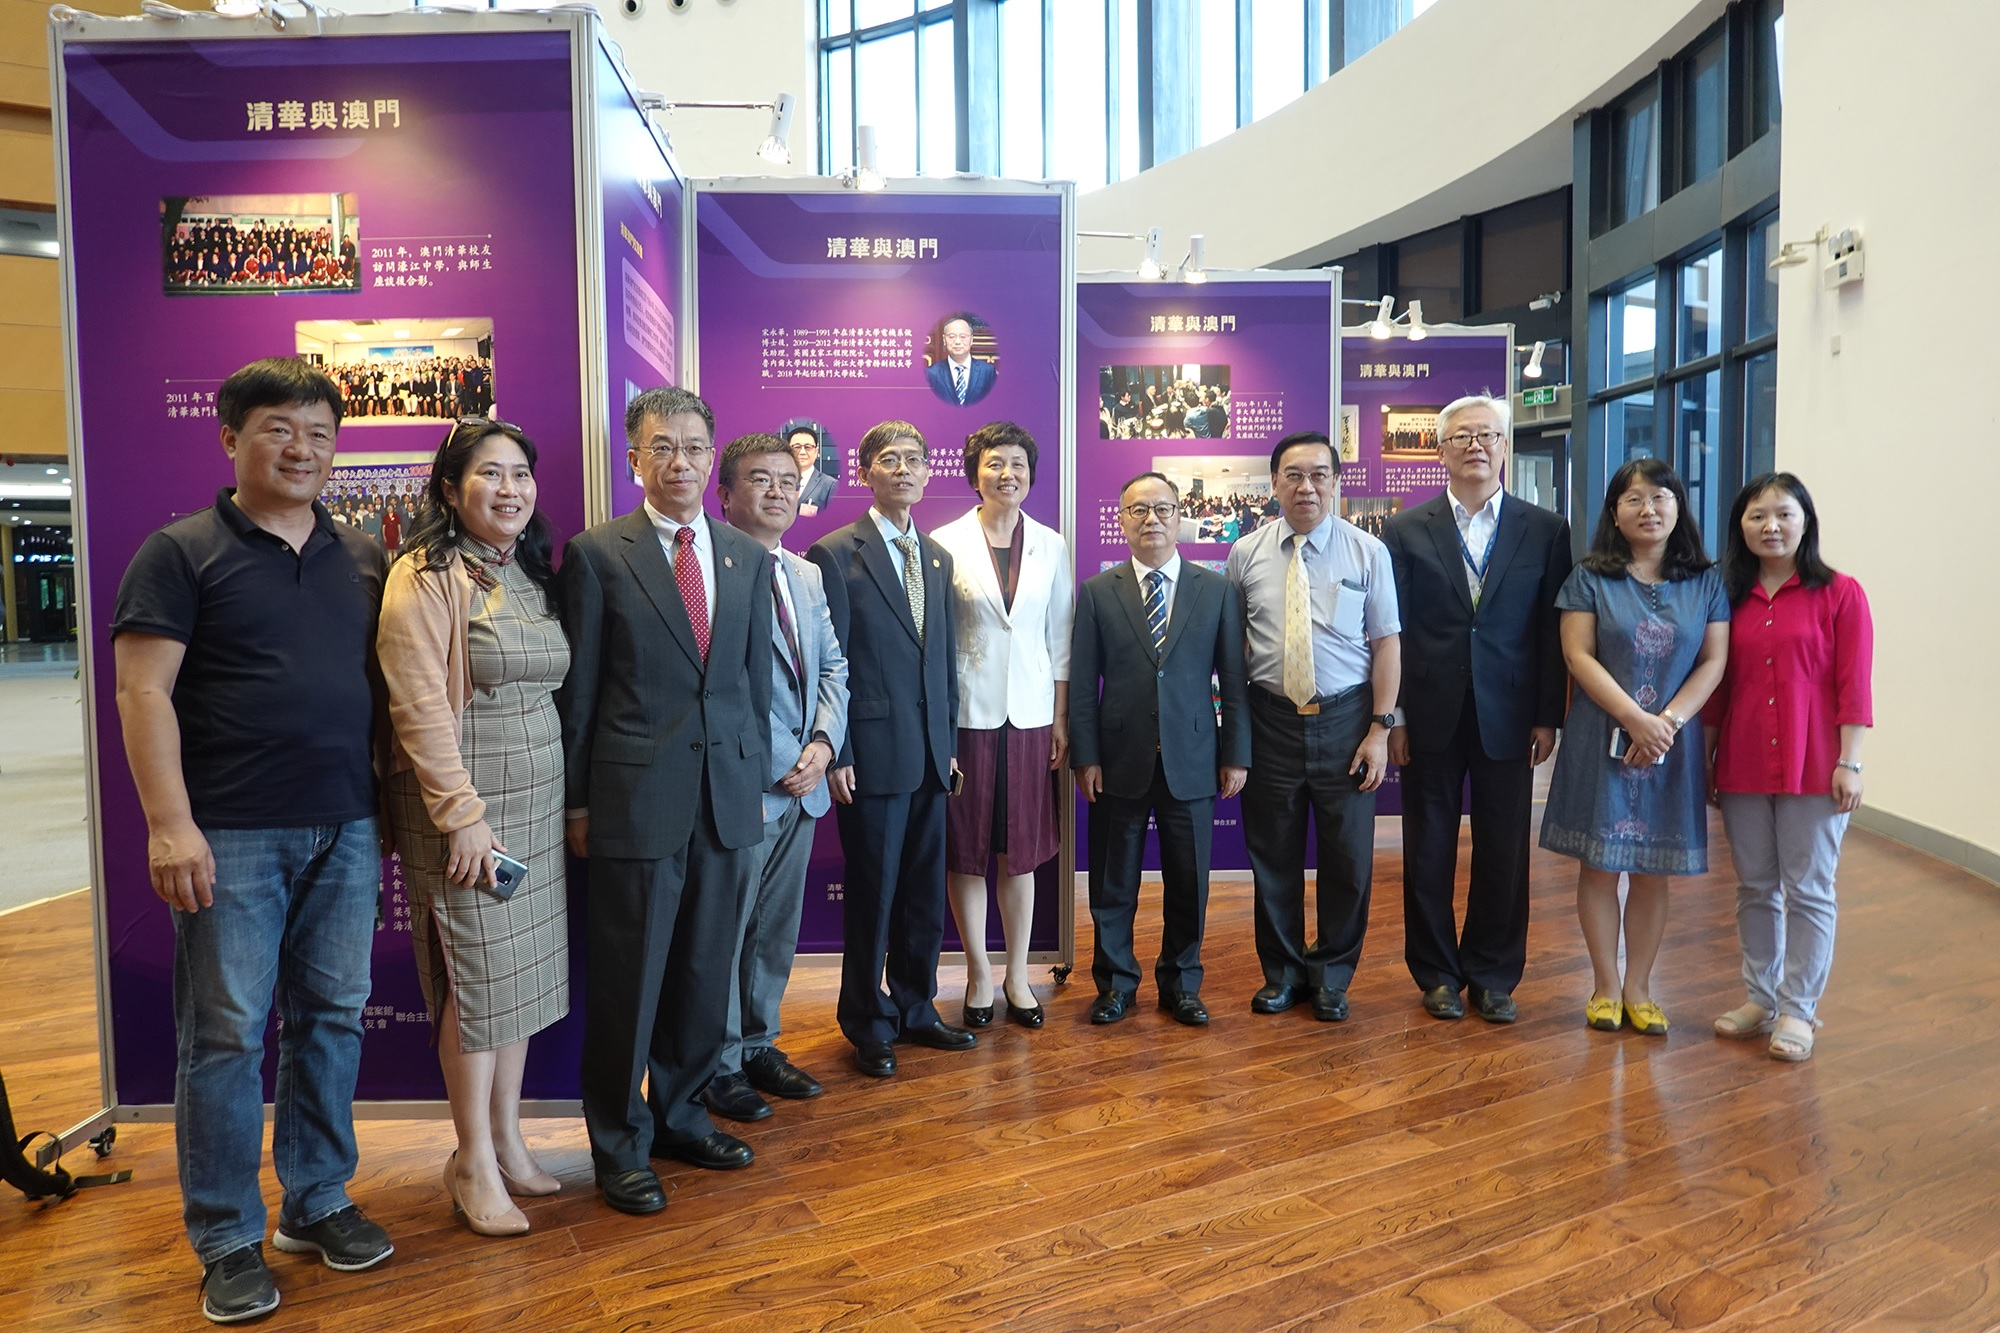 The delegation visits the 'Tsinghua and Macao' exhibition